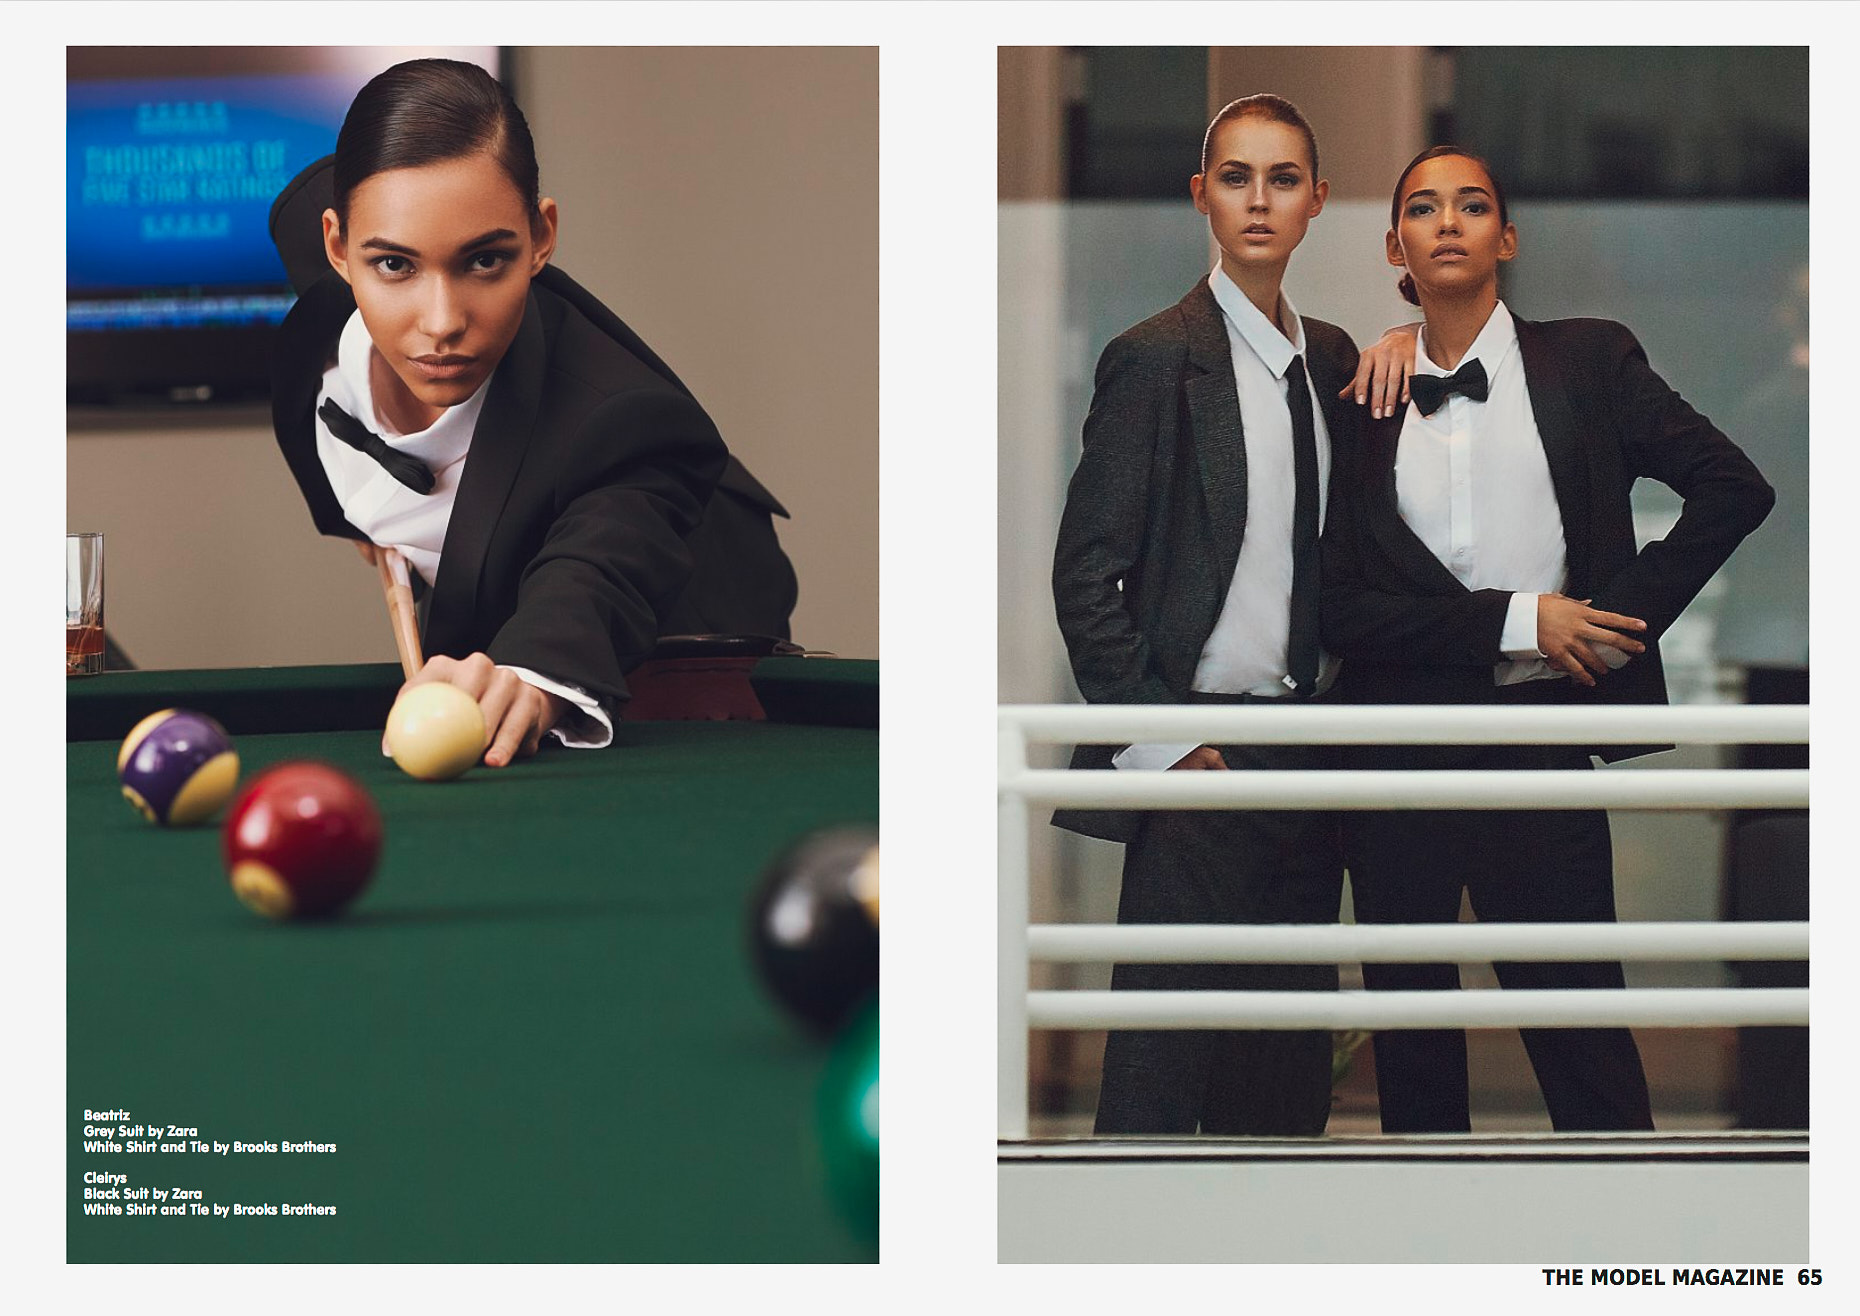 Marilyn Agency NYC - Beatriz and Cleirys